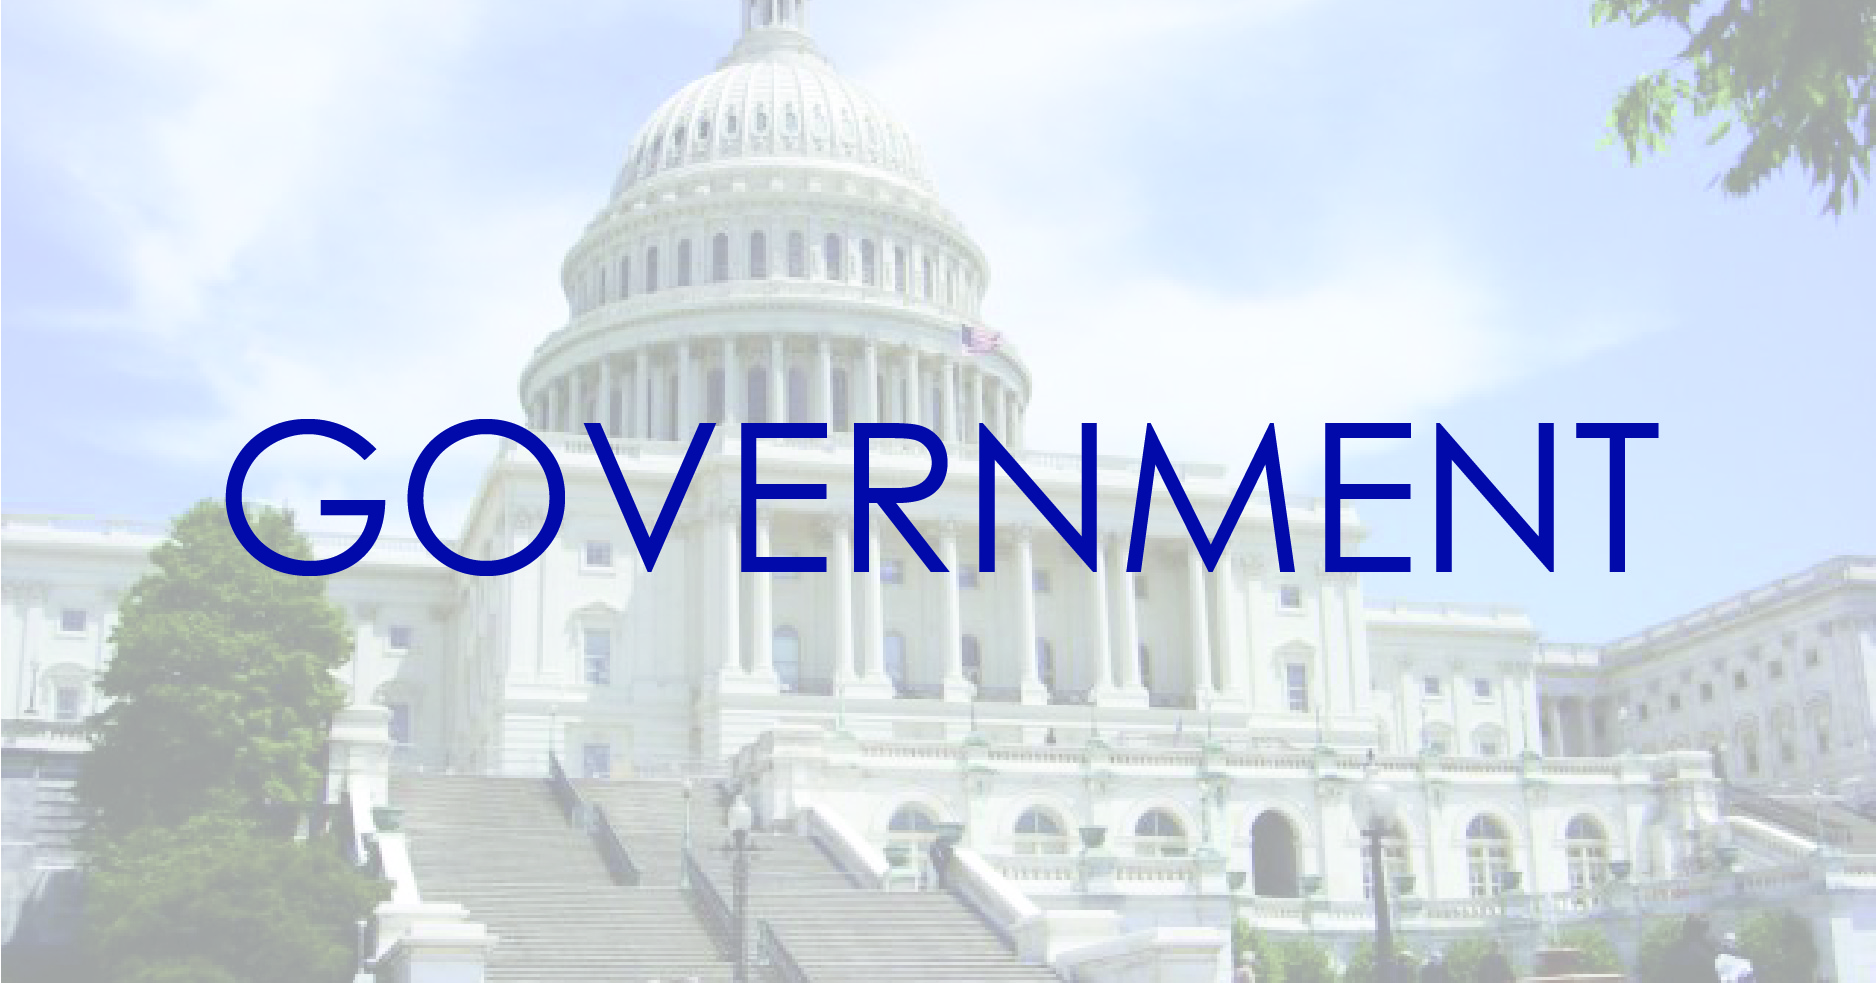 Government - Archived Title (2)-01.jpg